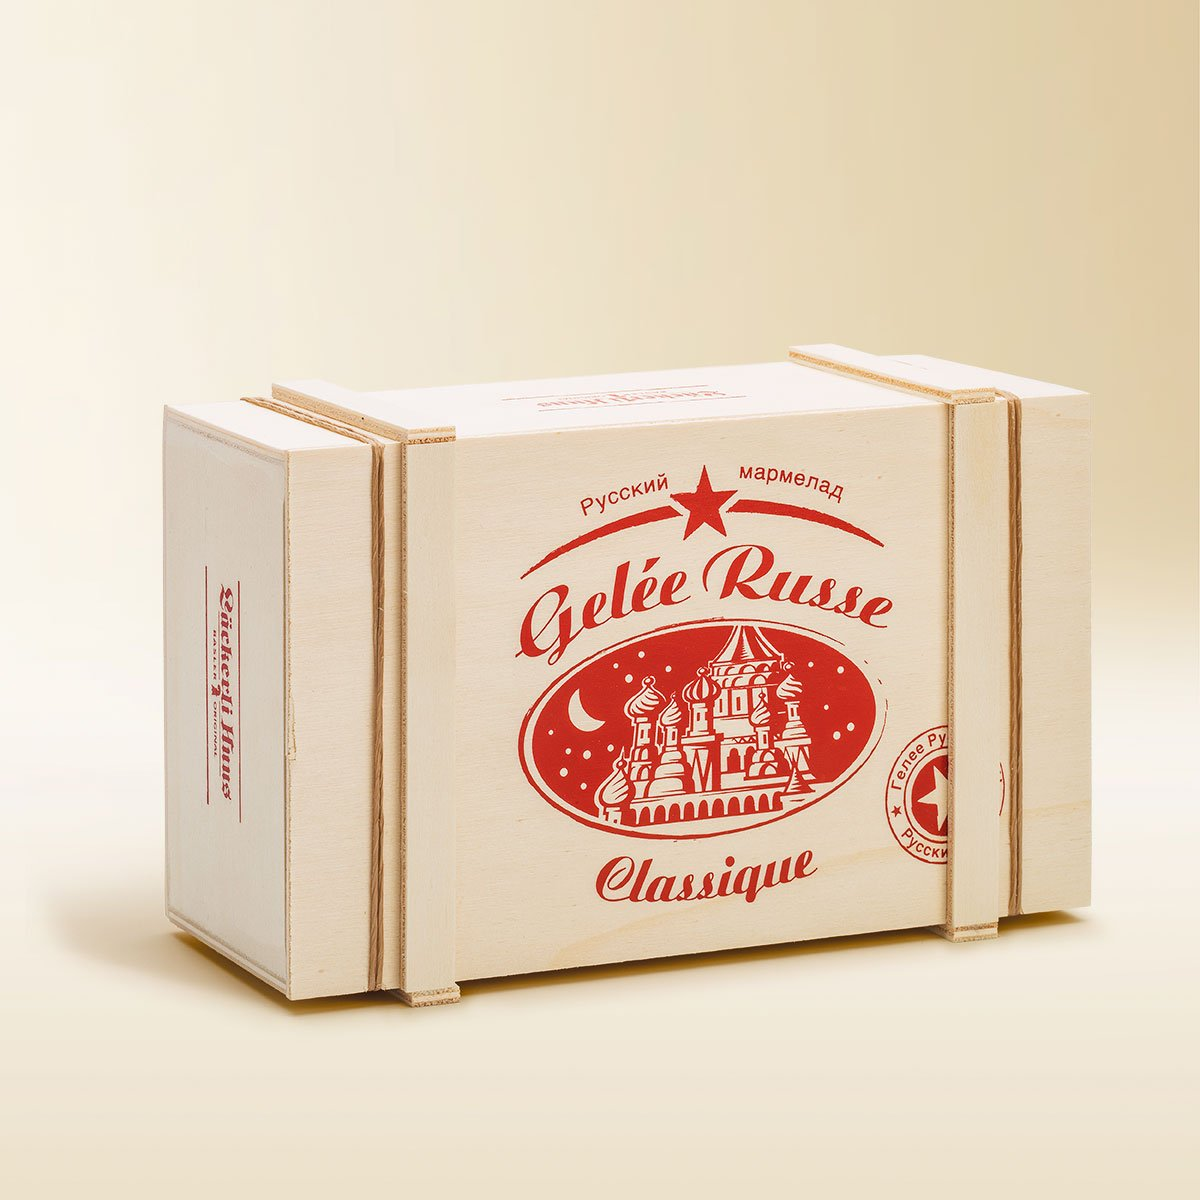 Gelée Russe Classique in a gift pack 900g